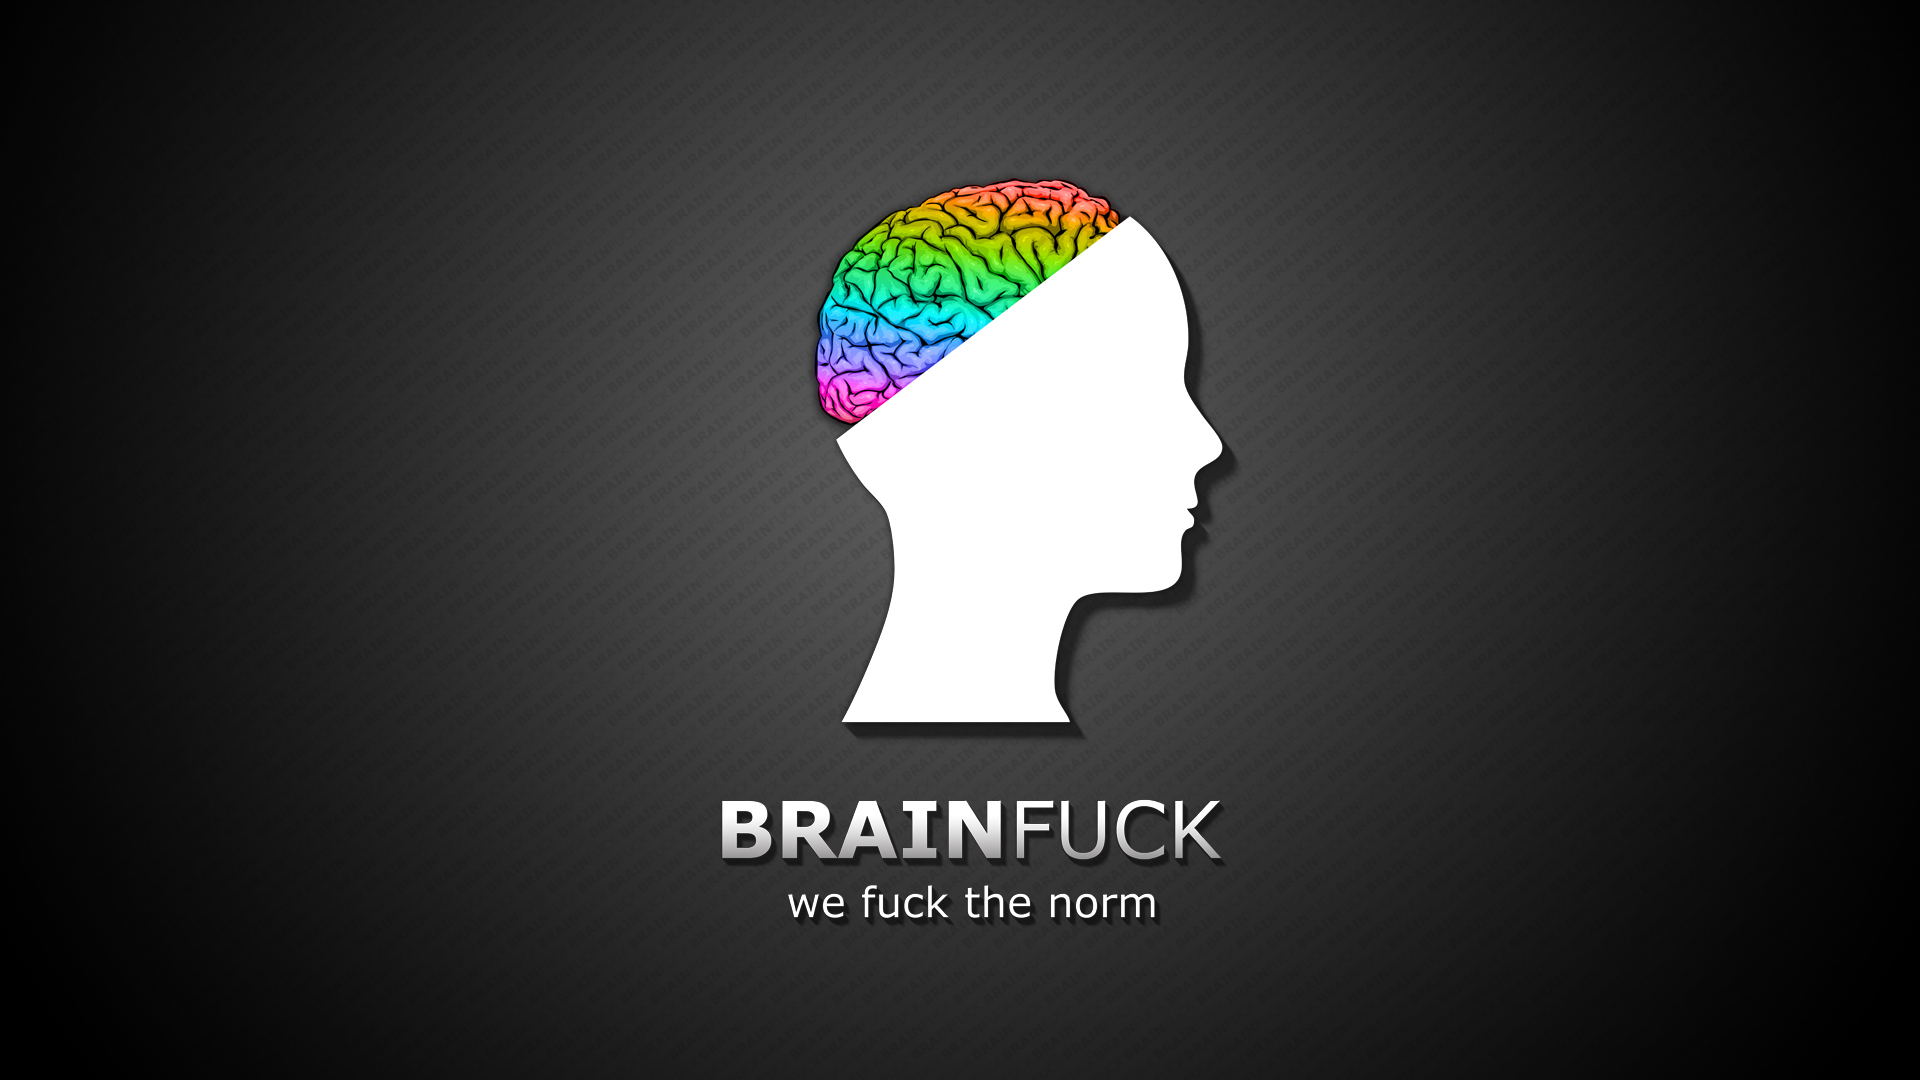 Brainfuck Wallpaper by Goerni